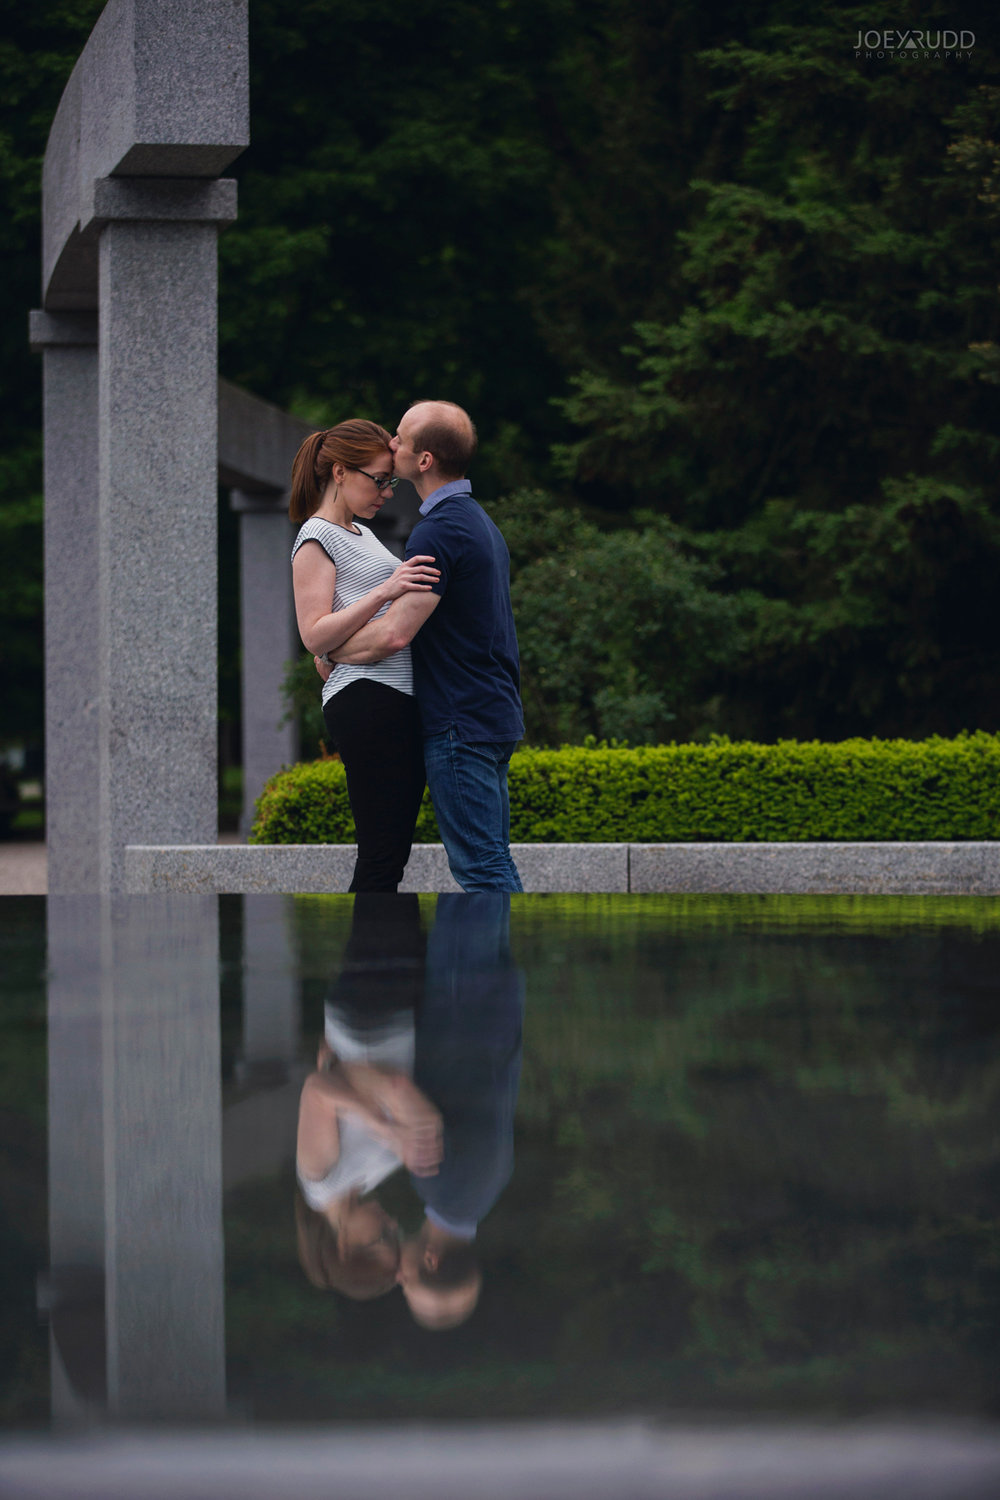 Rideau Hall Engagement, Joey Rudd Photography, Ottawa, Ottawa Engagement, Ottawa Engagement Photos, Fountain, Engaged Ottawa, Wedding Photographer, Wedding Photography, Rideau Park, Photo Locations Ottawa, Places for Photos in Ottawa, Reflection